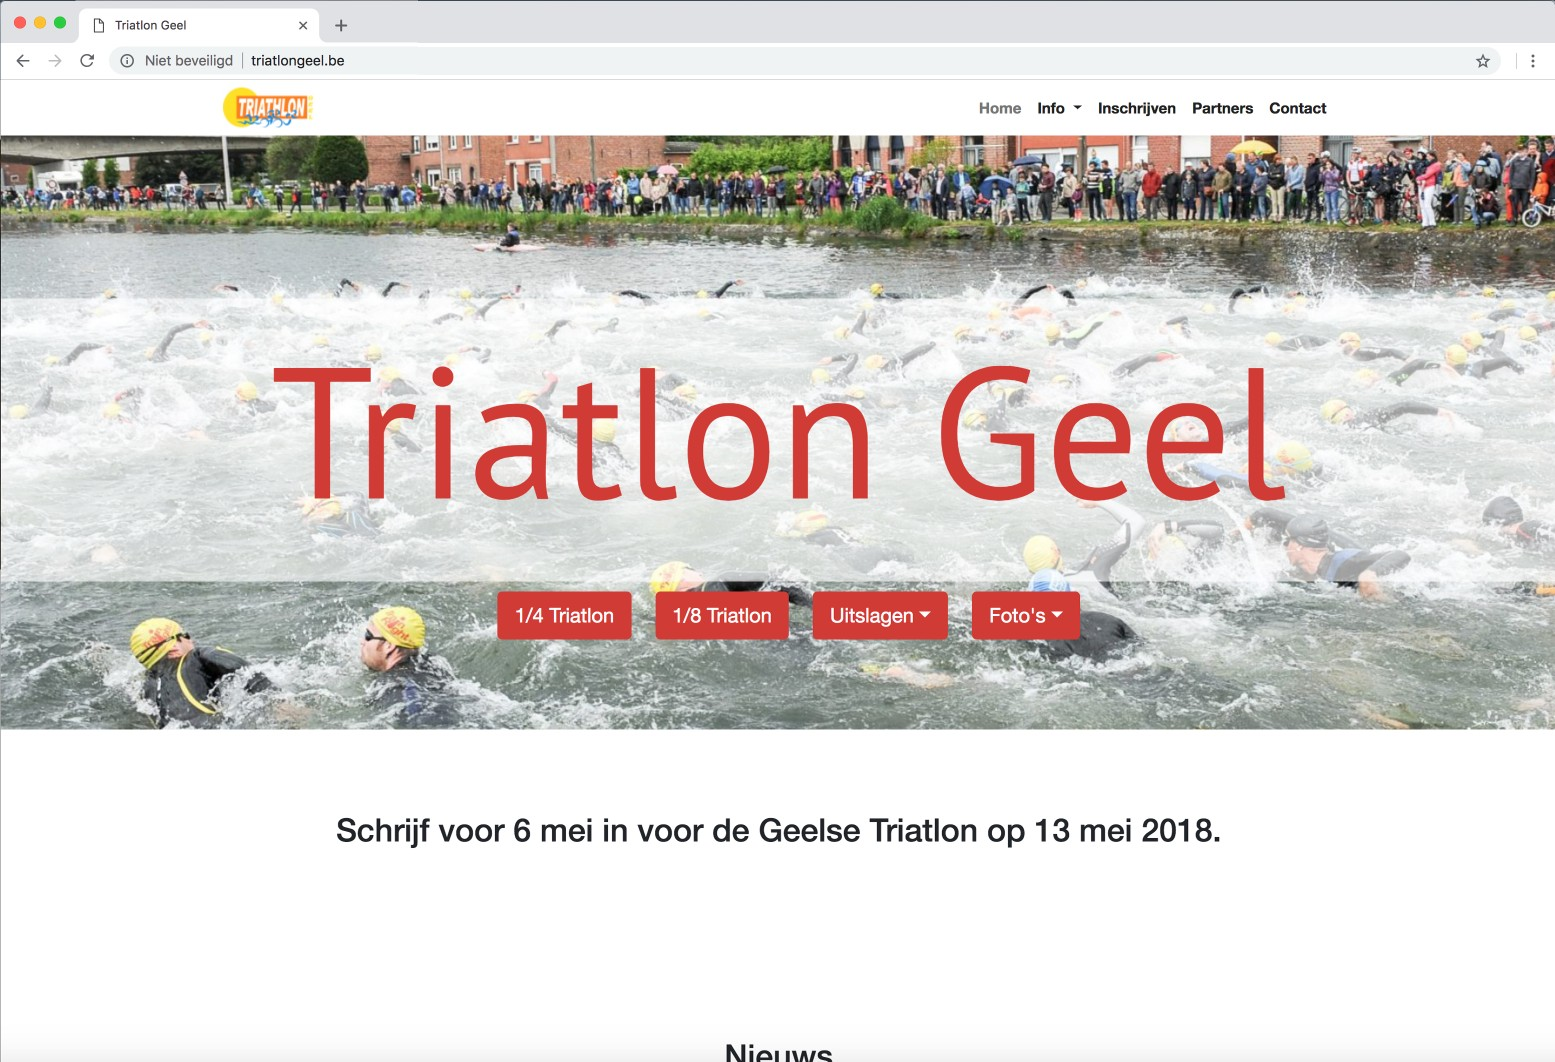 Triatlon Geel